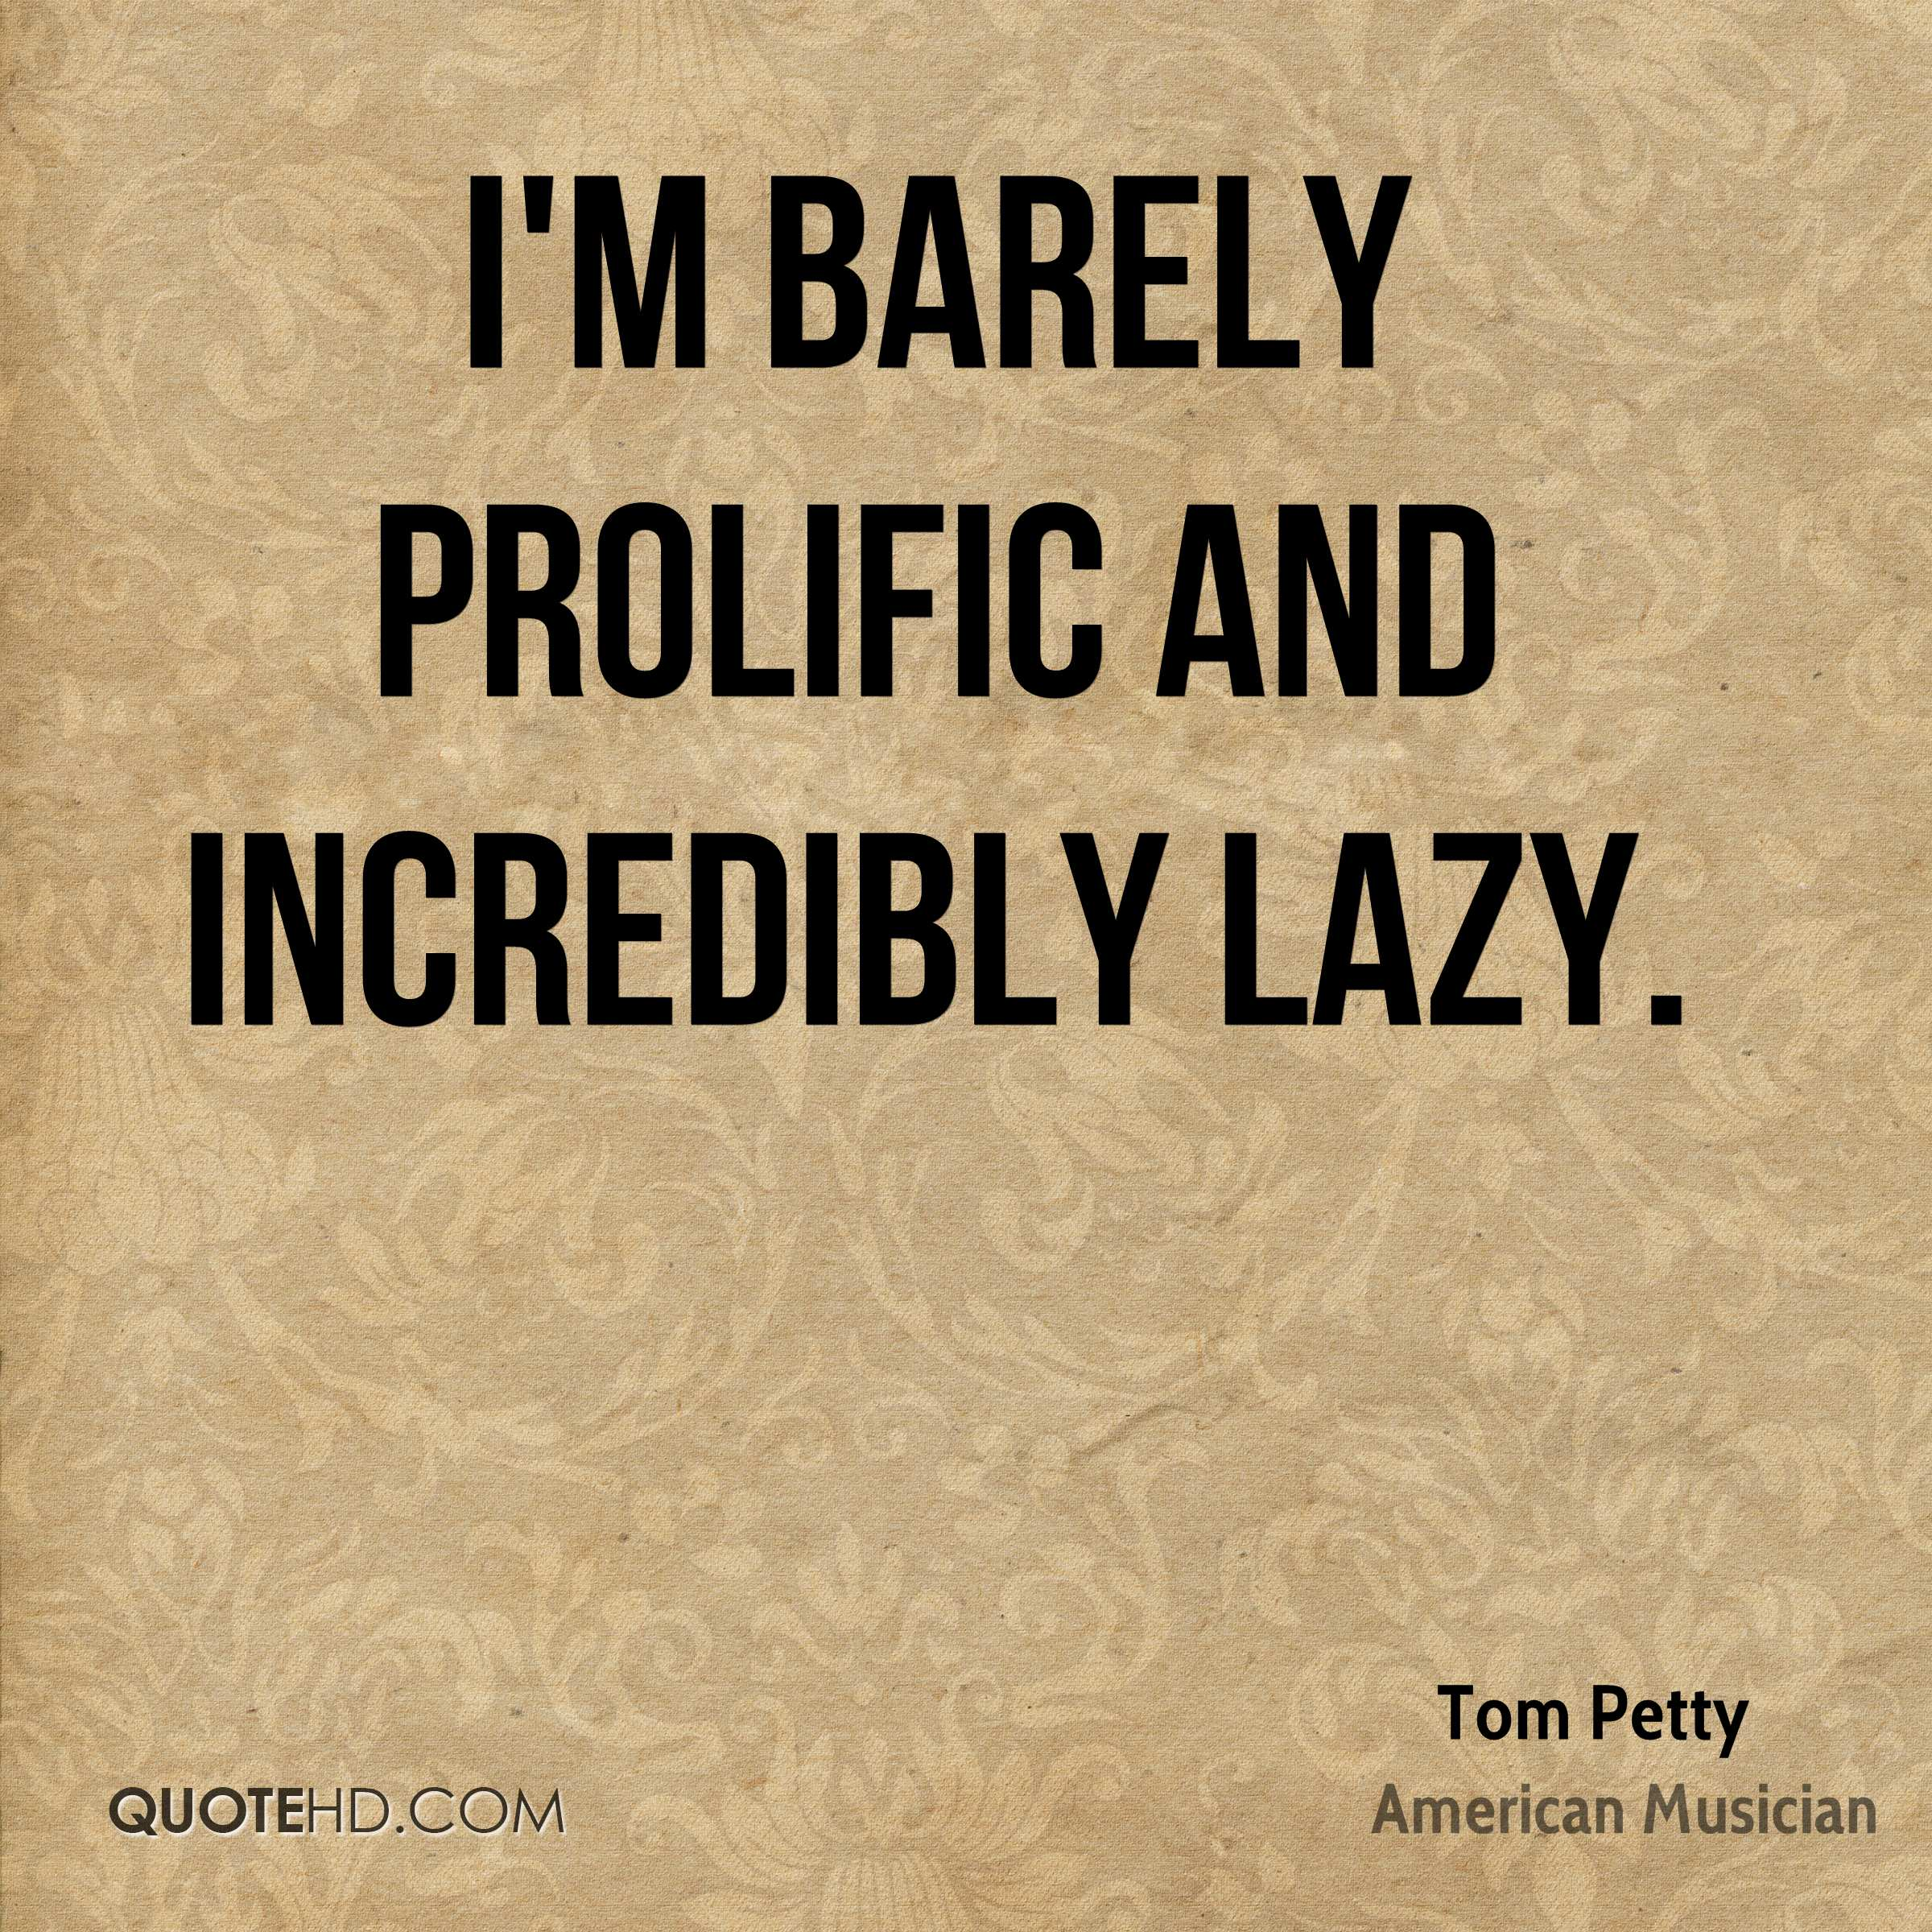 I'm barely prolific and incredibly lazy.